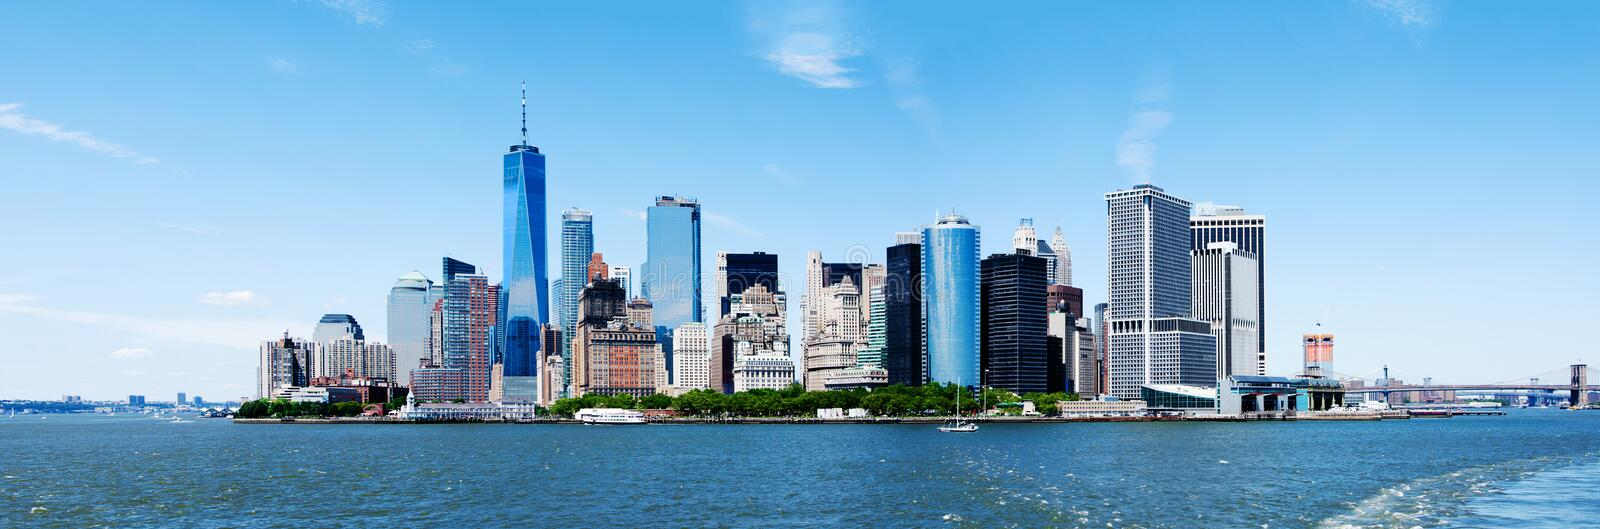 Skyline e Freedom Tower de New York City Manhattan do panorama fotografia de stock royalty free